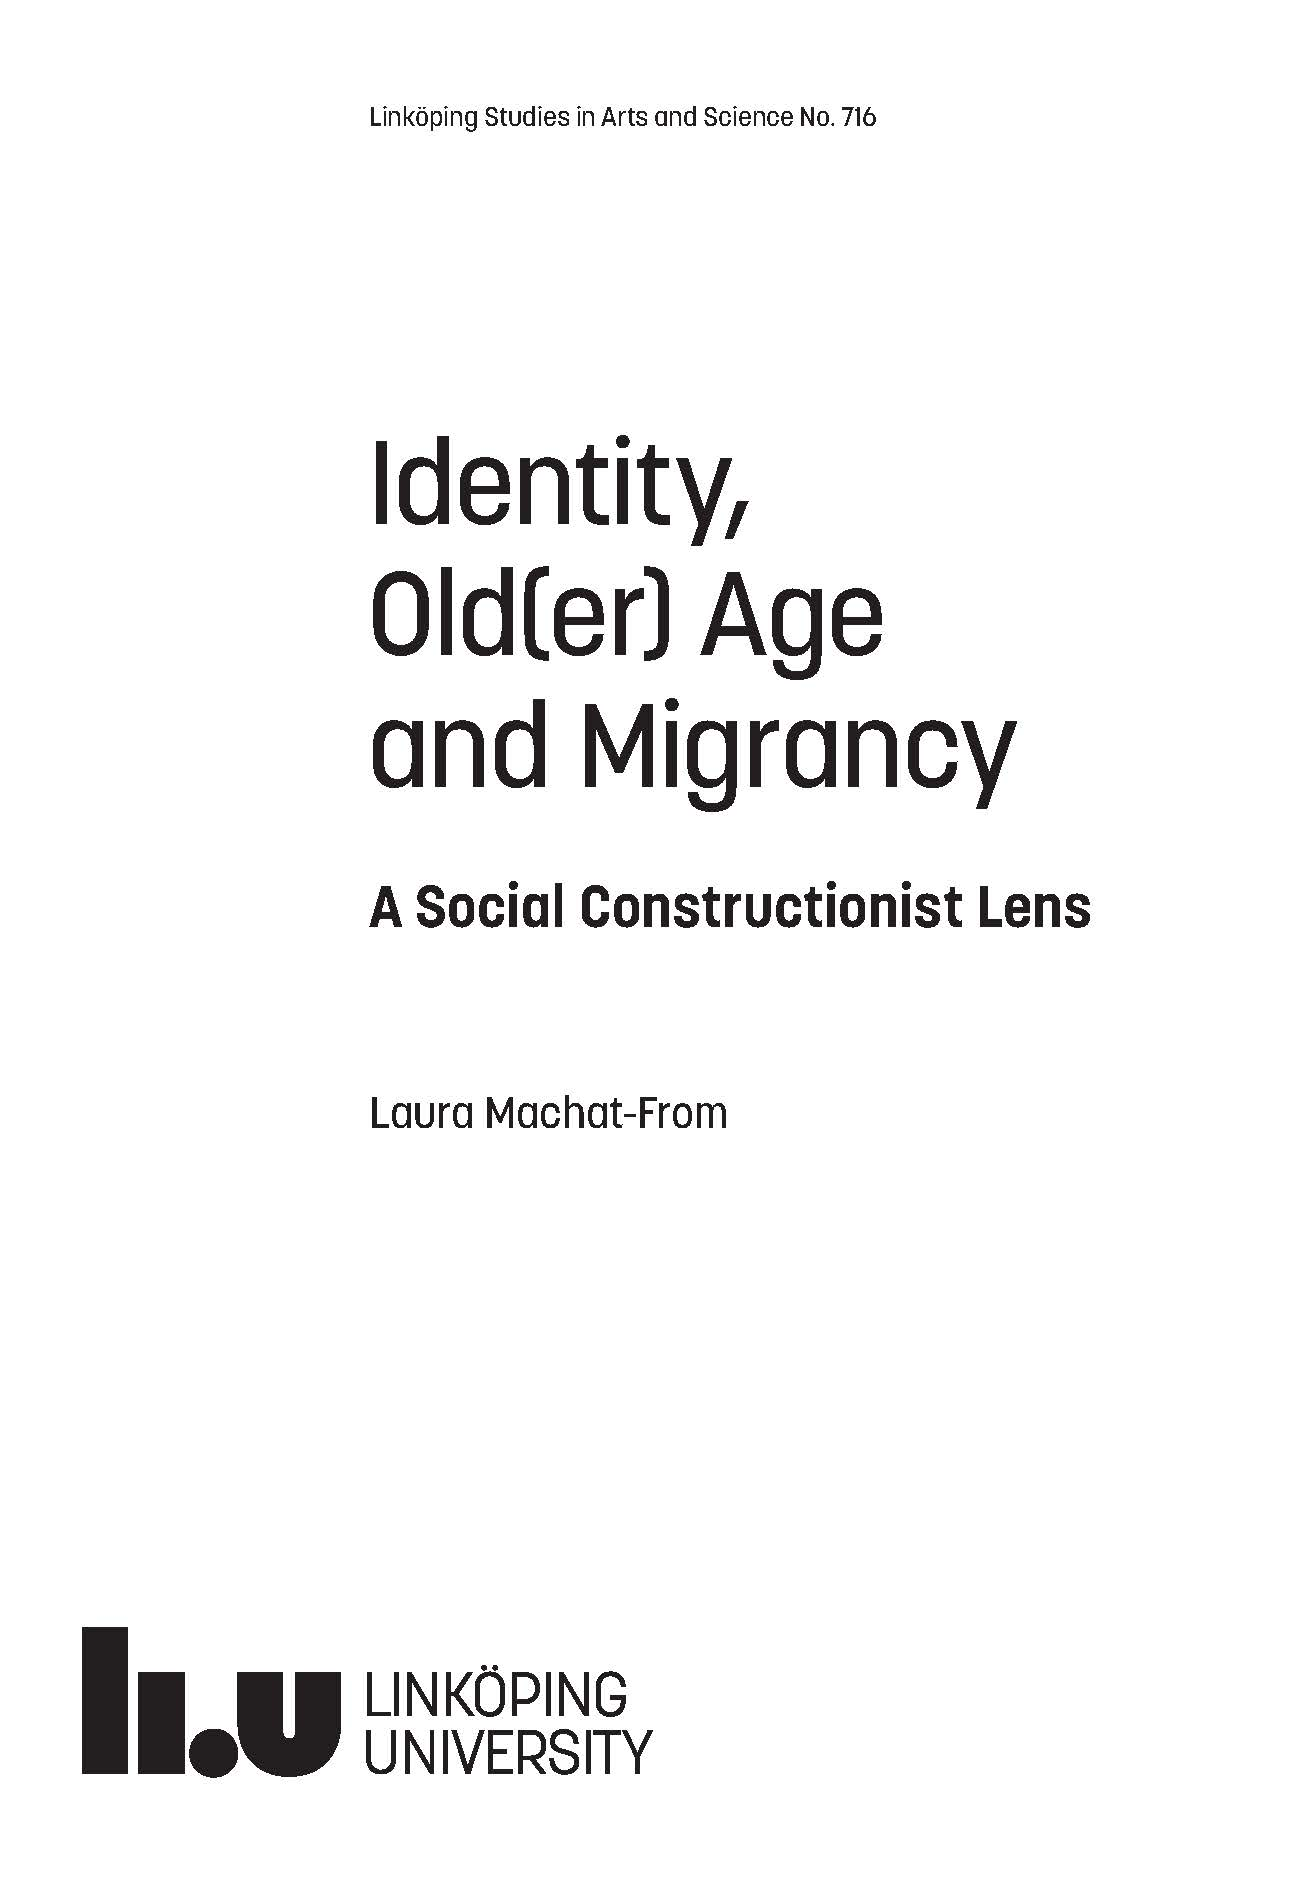 identity old er age and migrancy a social constructionist lens